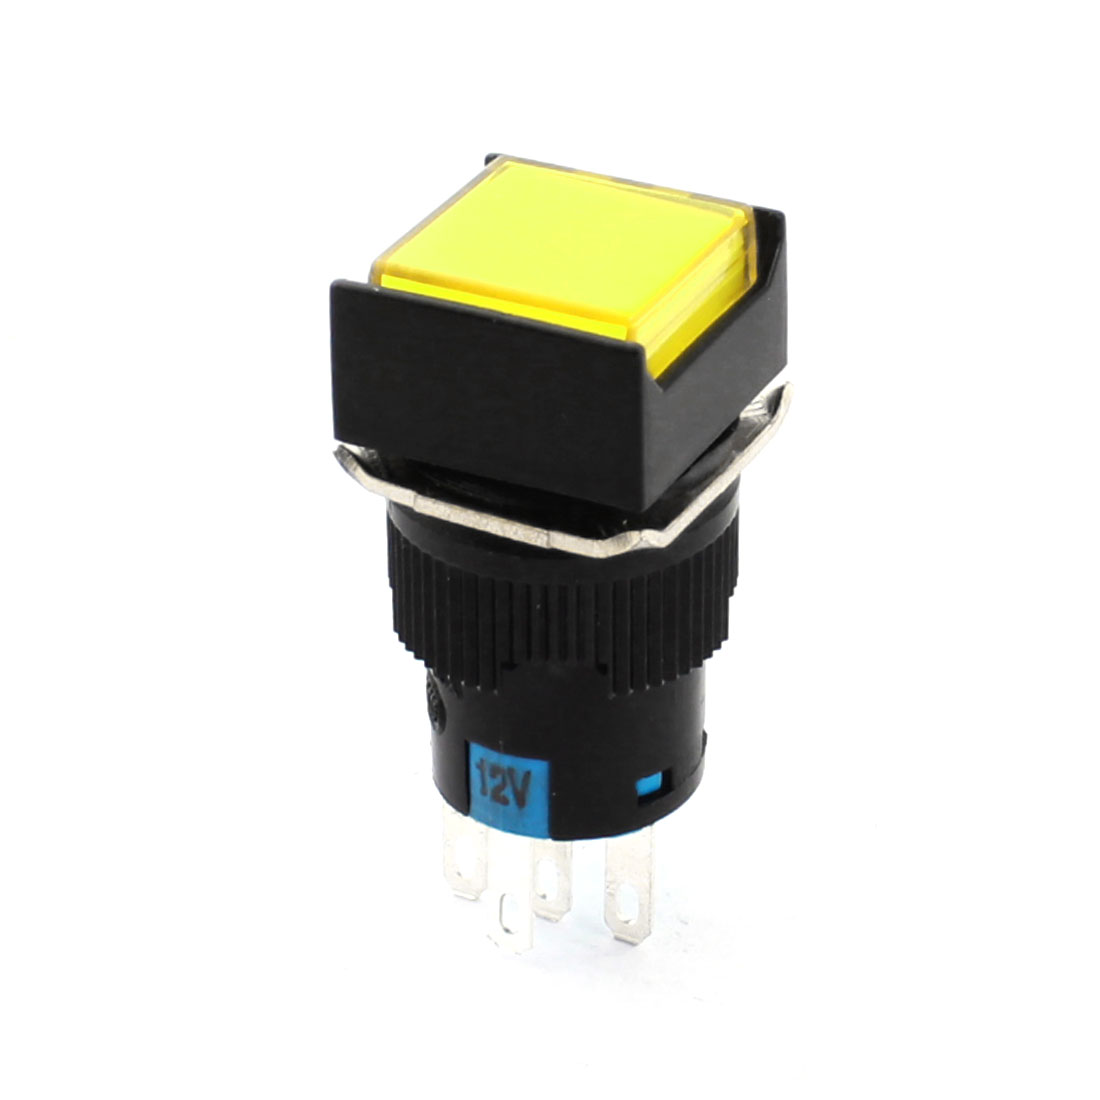 DC 12V Yellow Light Lamp 5Pin 16mm Panel Mount SPDT Momentary Action Square Push Button Switch + 5pcs Connectors